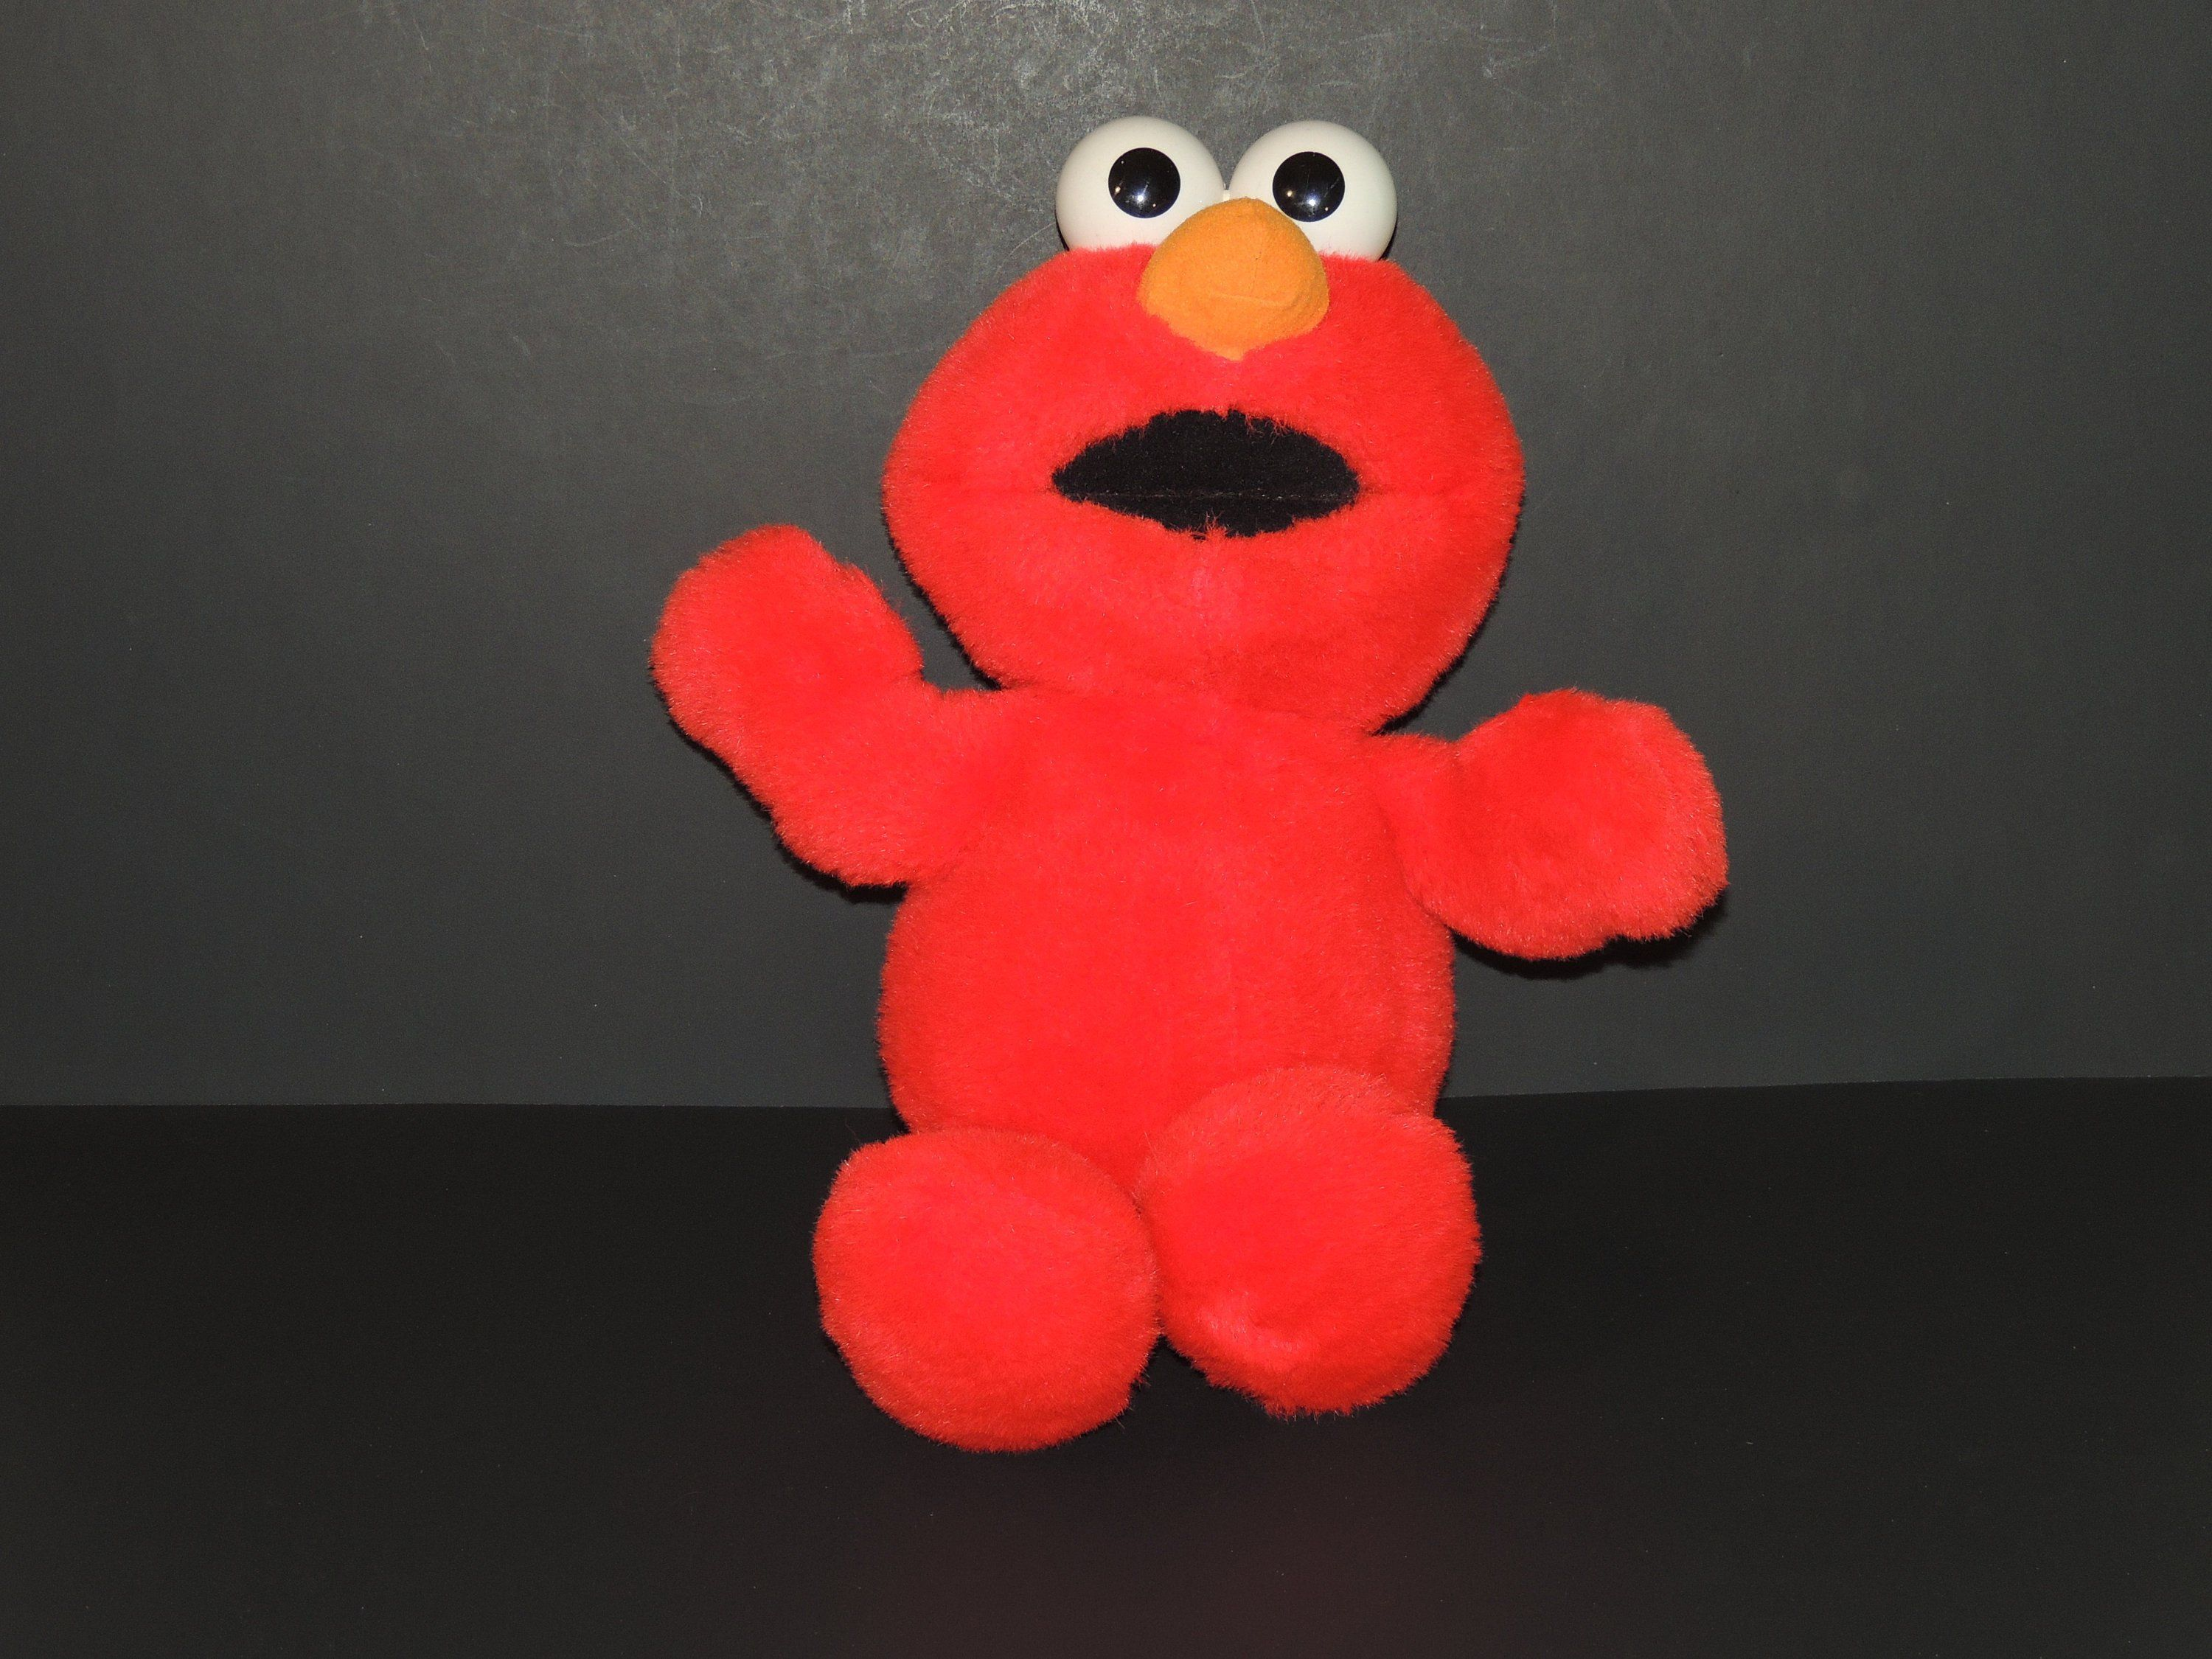 1995 Tickle Me Elmo Jim Henson TYCO Preschool Toys, Inc